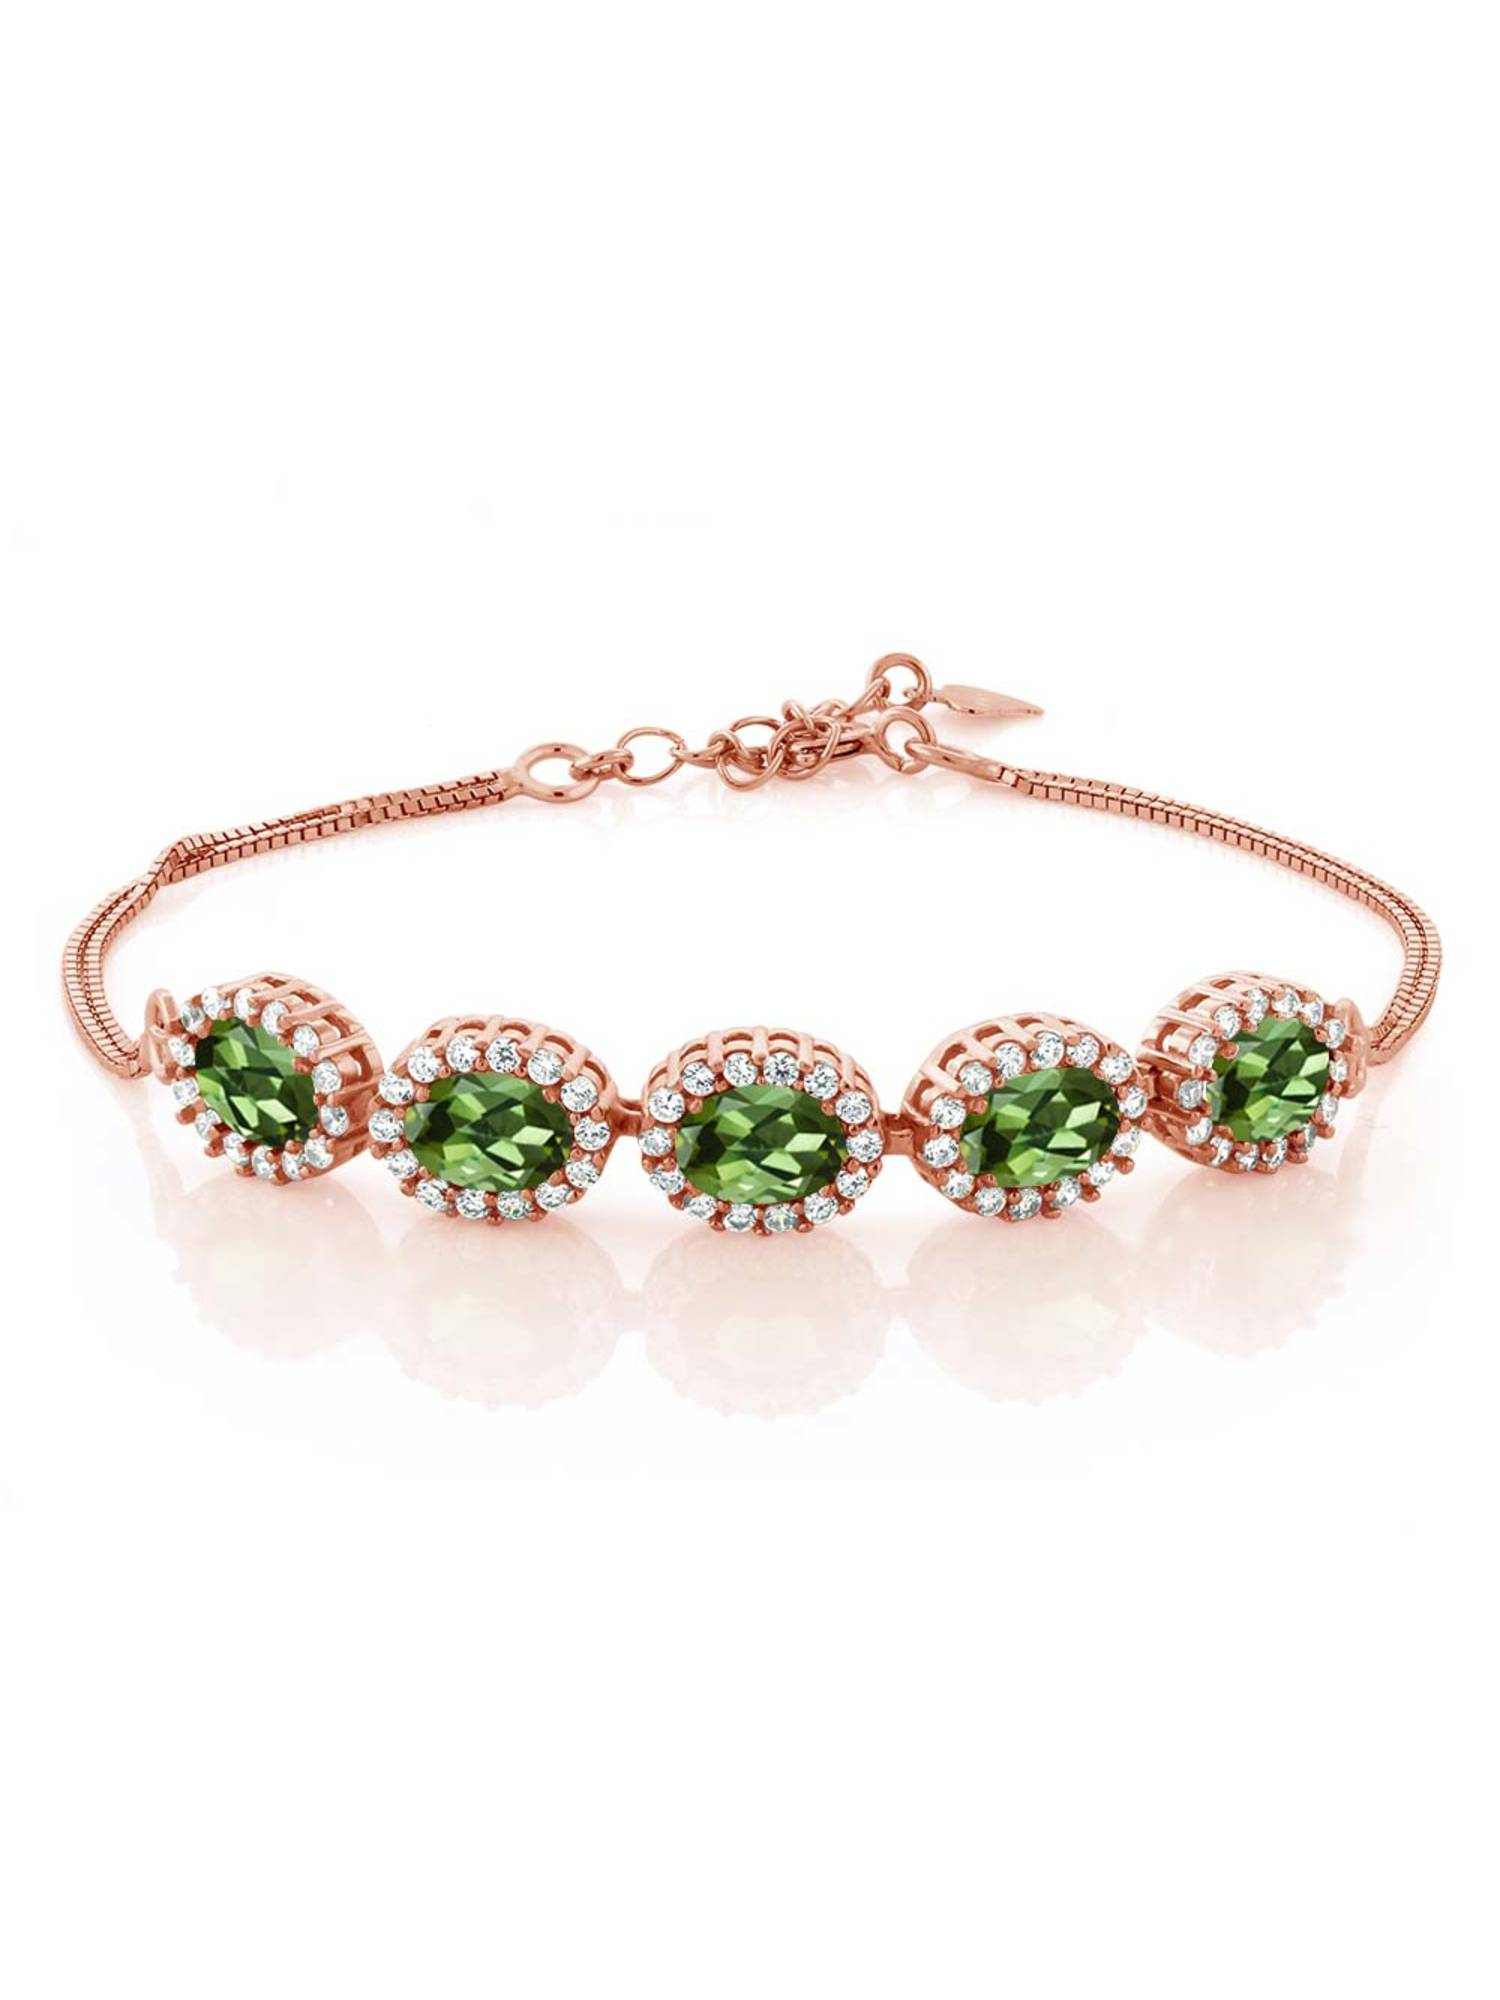 5.29 Ct Oval Green Tourmaline 18K Rose Gold Plated Silver Bracelet by